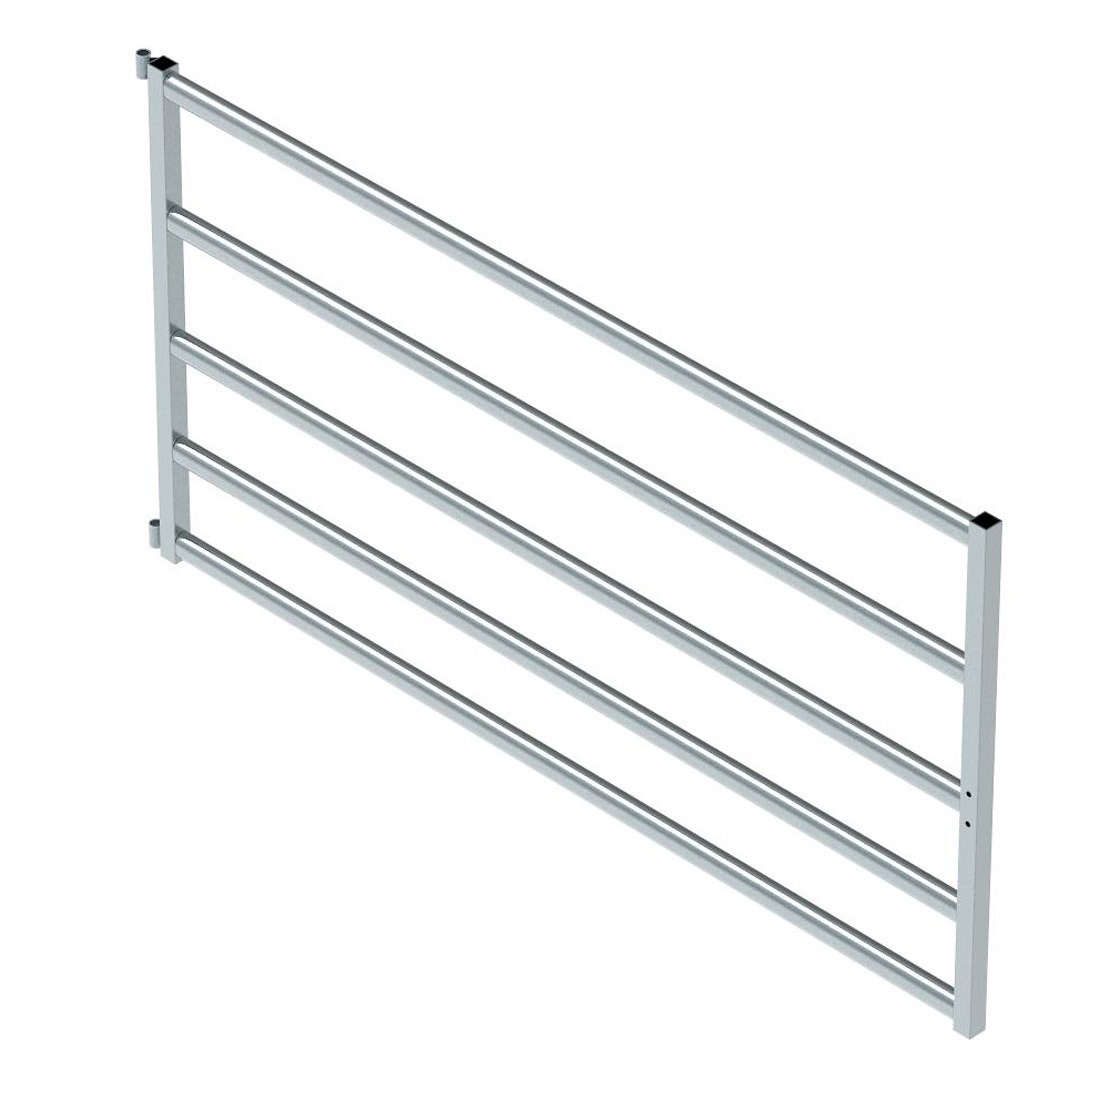 Cattle Gate 5 Rail (2500mm x 1320mm High)